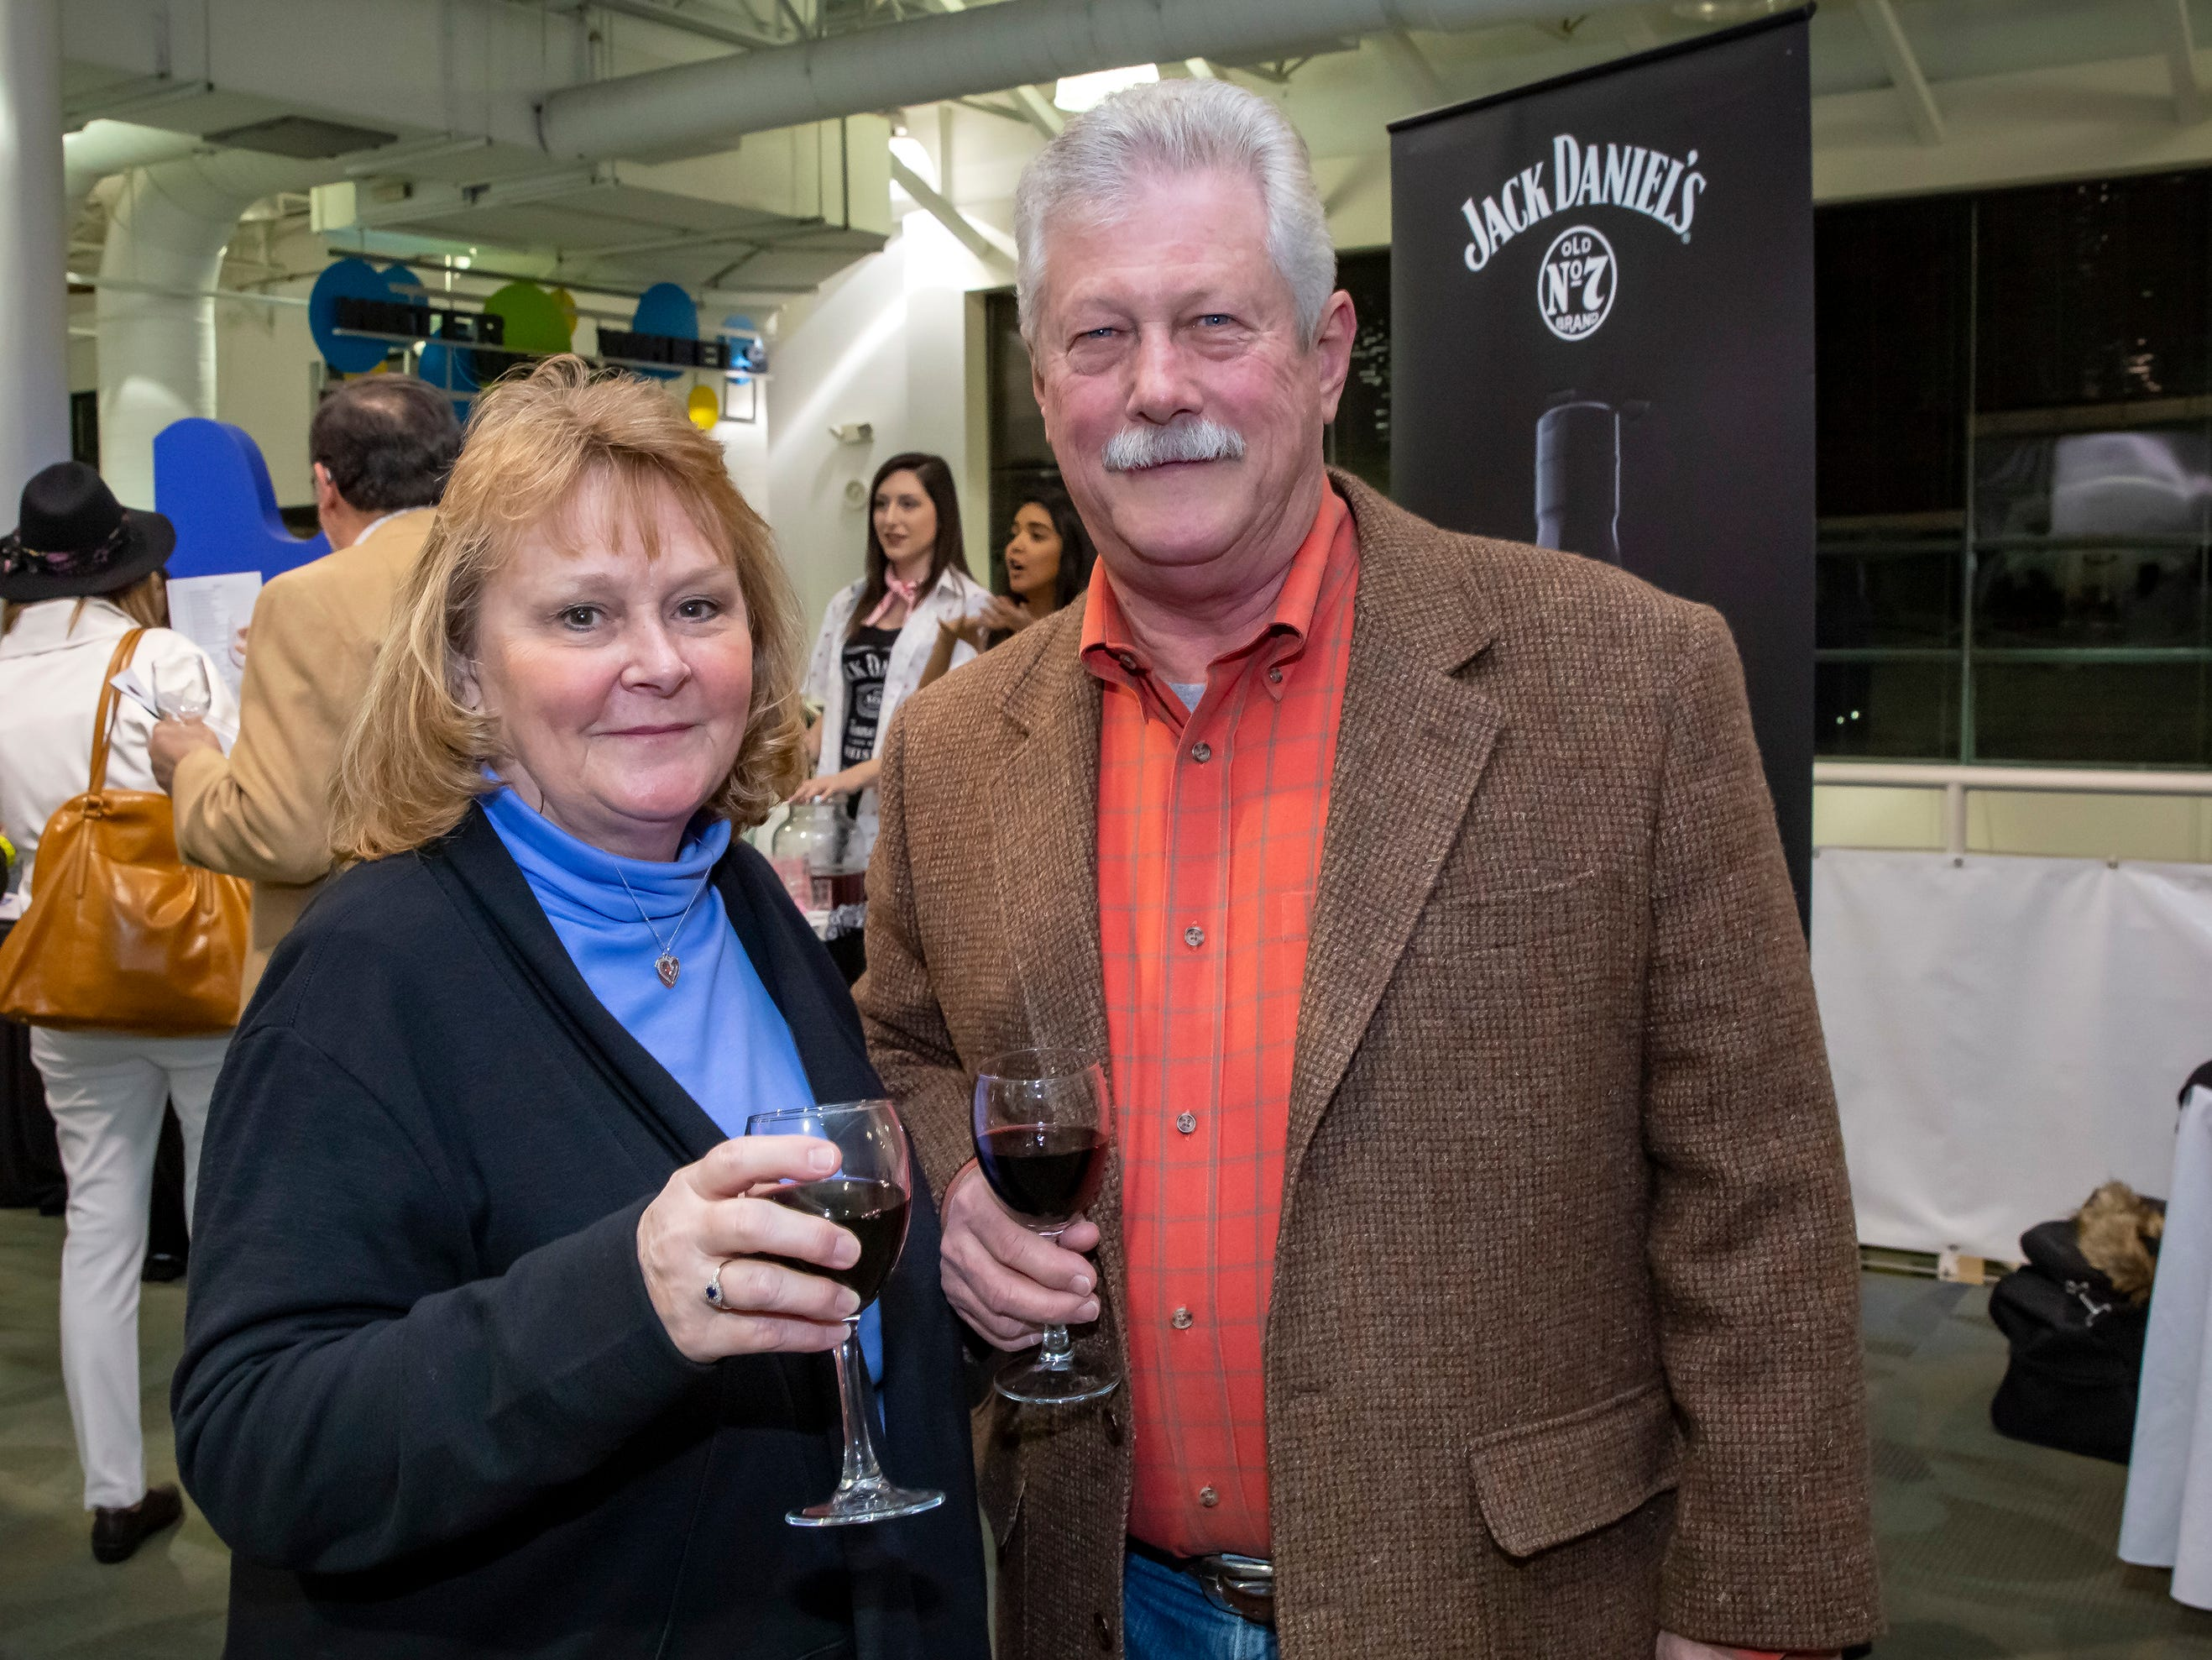 6th annual Wine and Whiskey at the Wetlands event held at the Discovery Center.